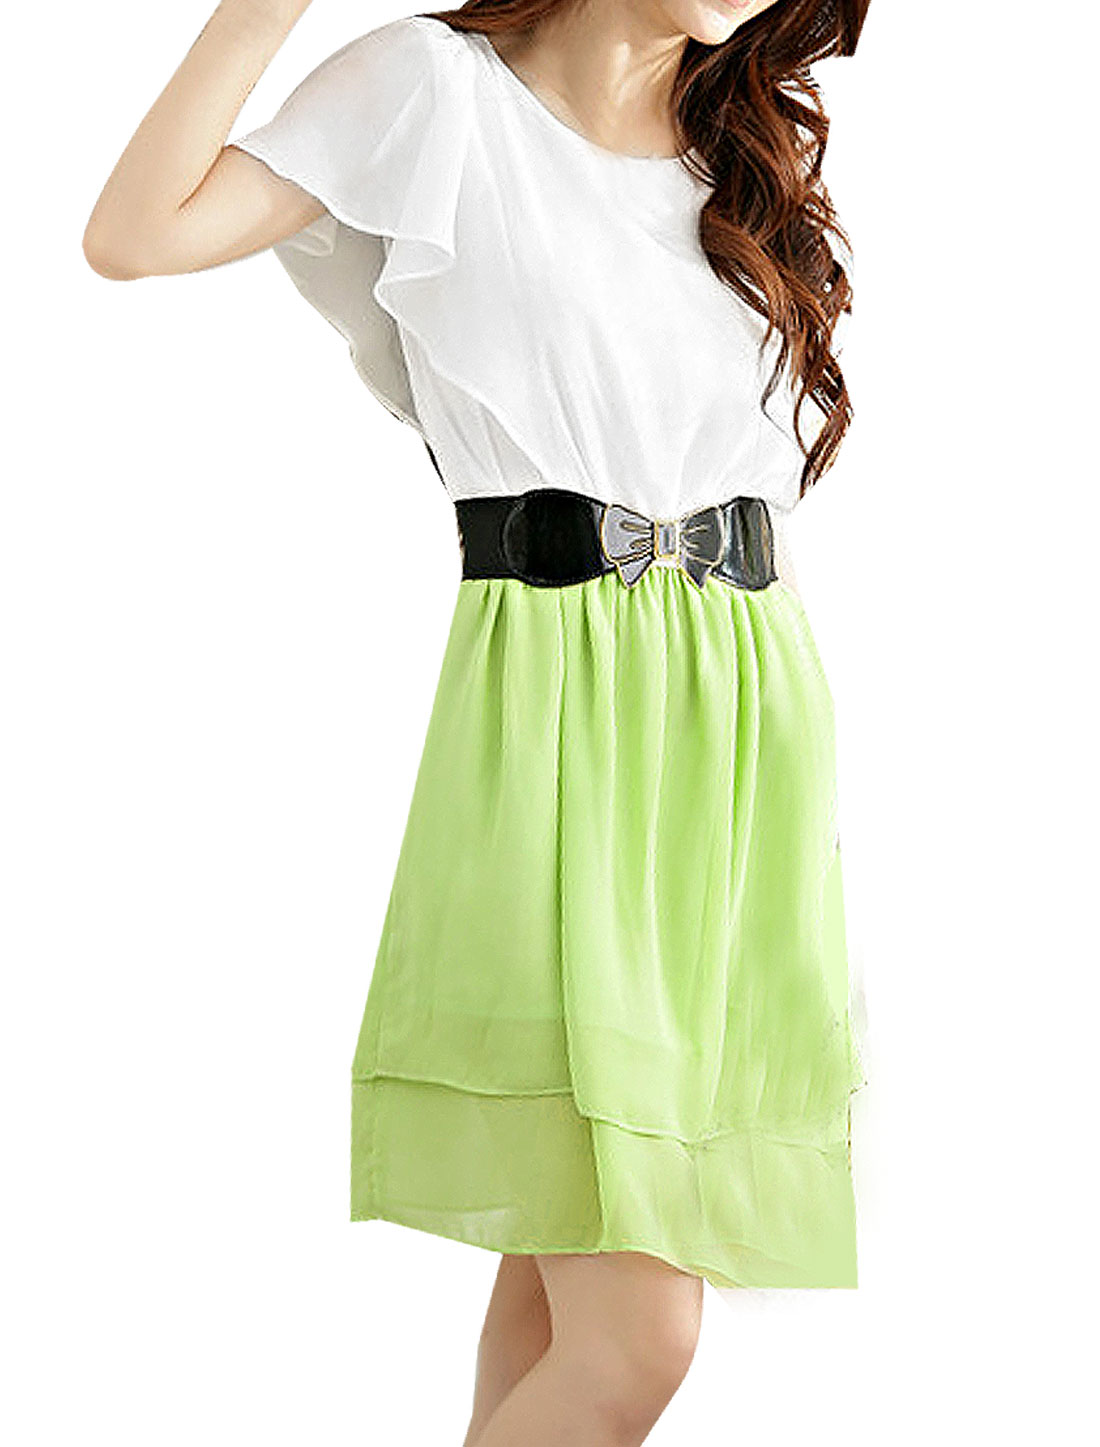 Women Butterfly Sleeves Contrast Color Chiffon Dress w Belt Light Green XS